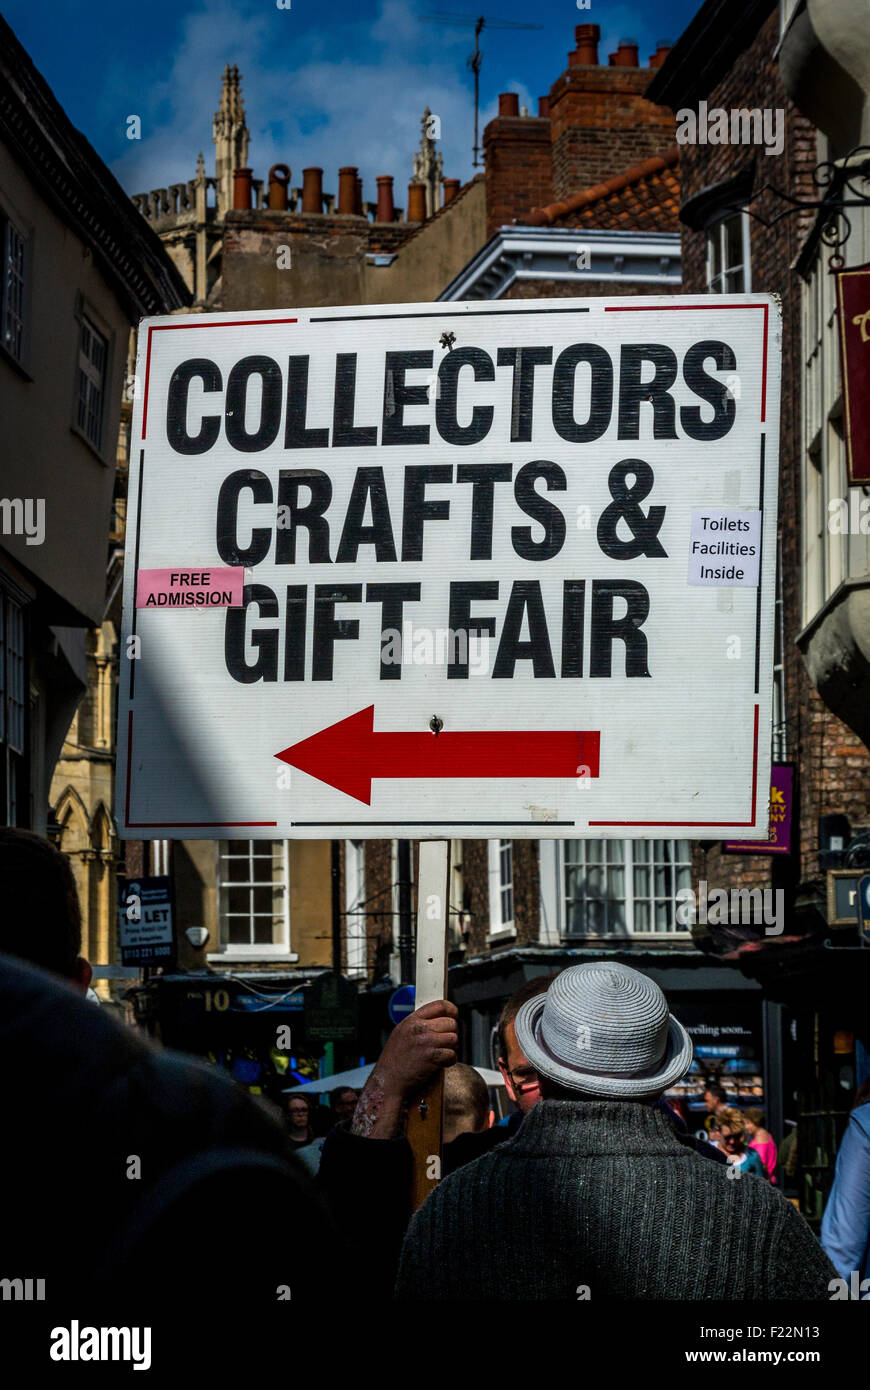 Collectors Crafts and Gift Fair placard, York city centre. - Stock Image